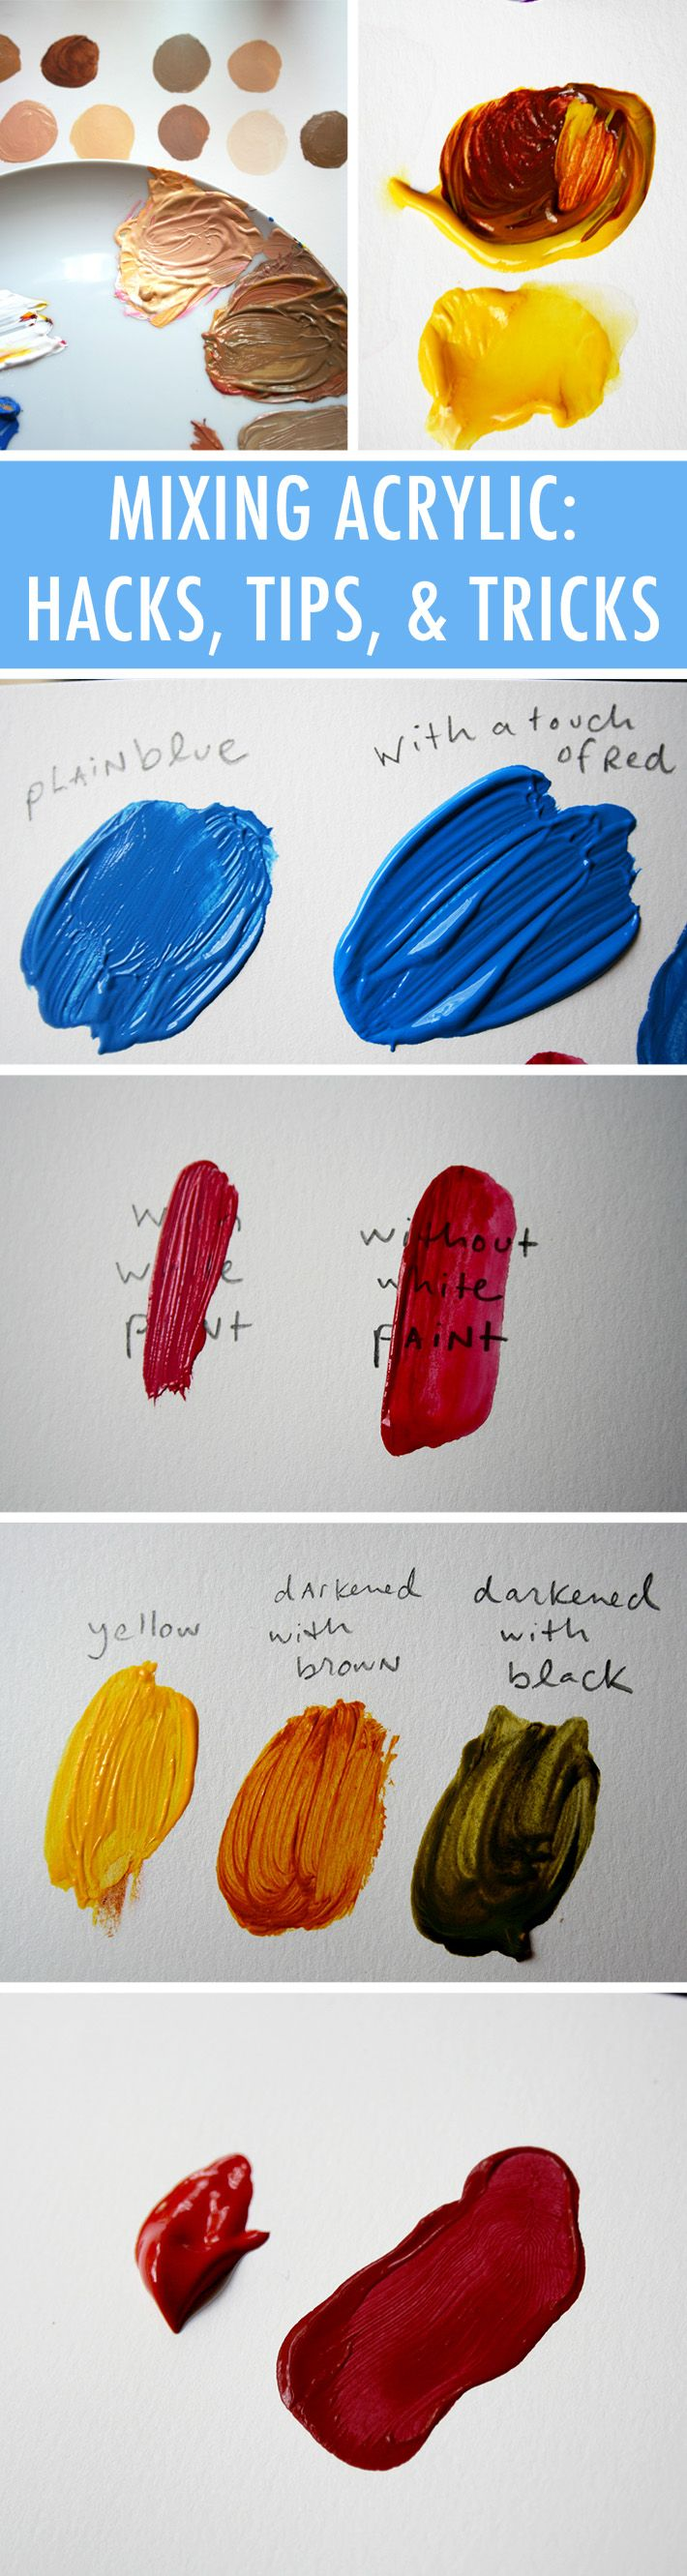 11 Hacks on How to mix acrylic paint Remember : Your paint will dry slightly darker than it looks on your palette. Keep this in mind when mixing colors, and try to mix colors a shade or two lighter than you want for the final outcome. To test the finished color, you can use the same trick they do on top of room paint: Smudge a bit on paper to see how it dries.